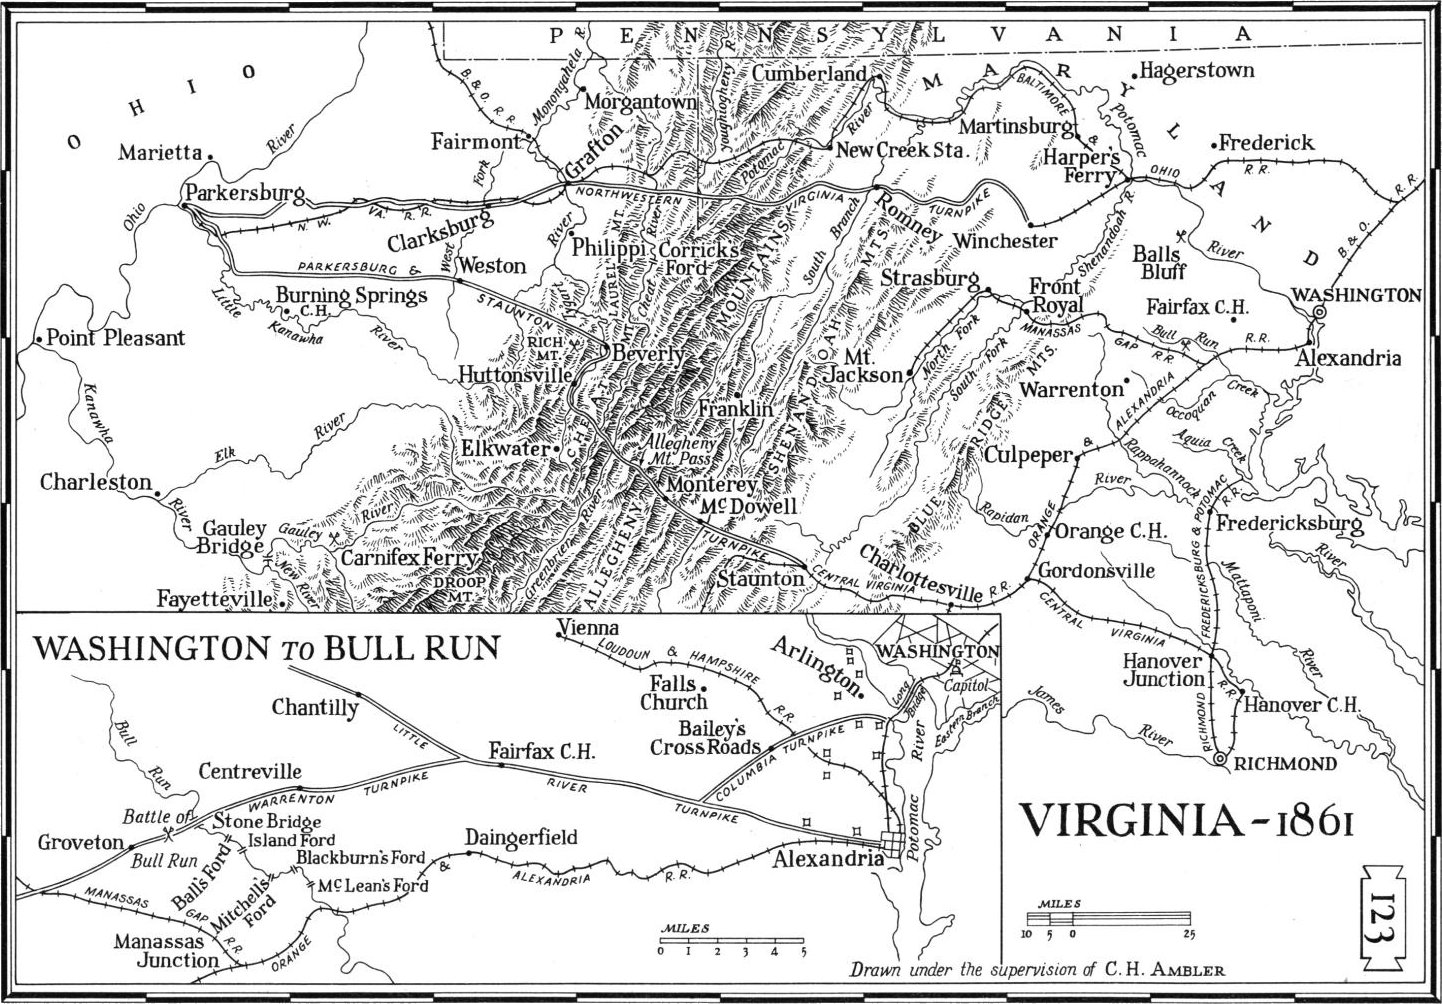 Virginia Maps Virginia Digital Map Library Table Of